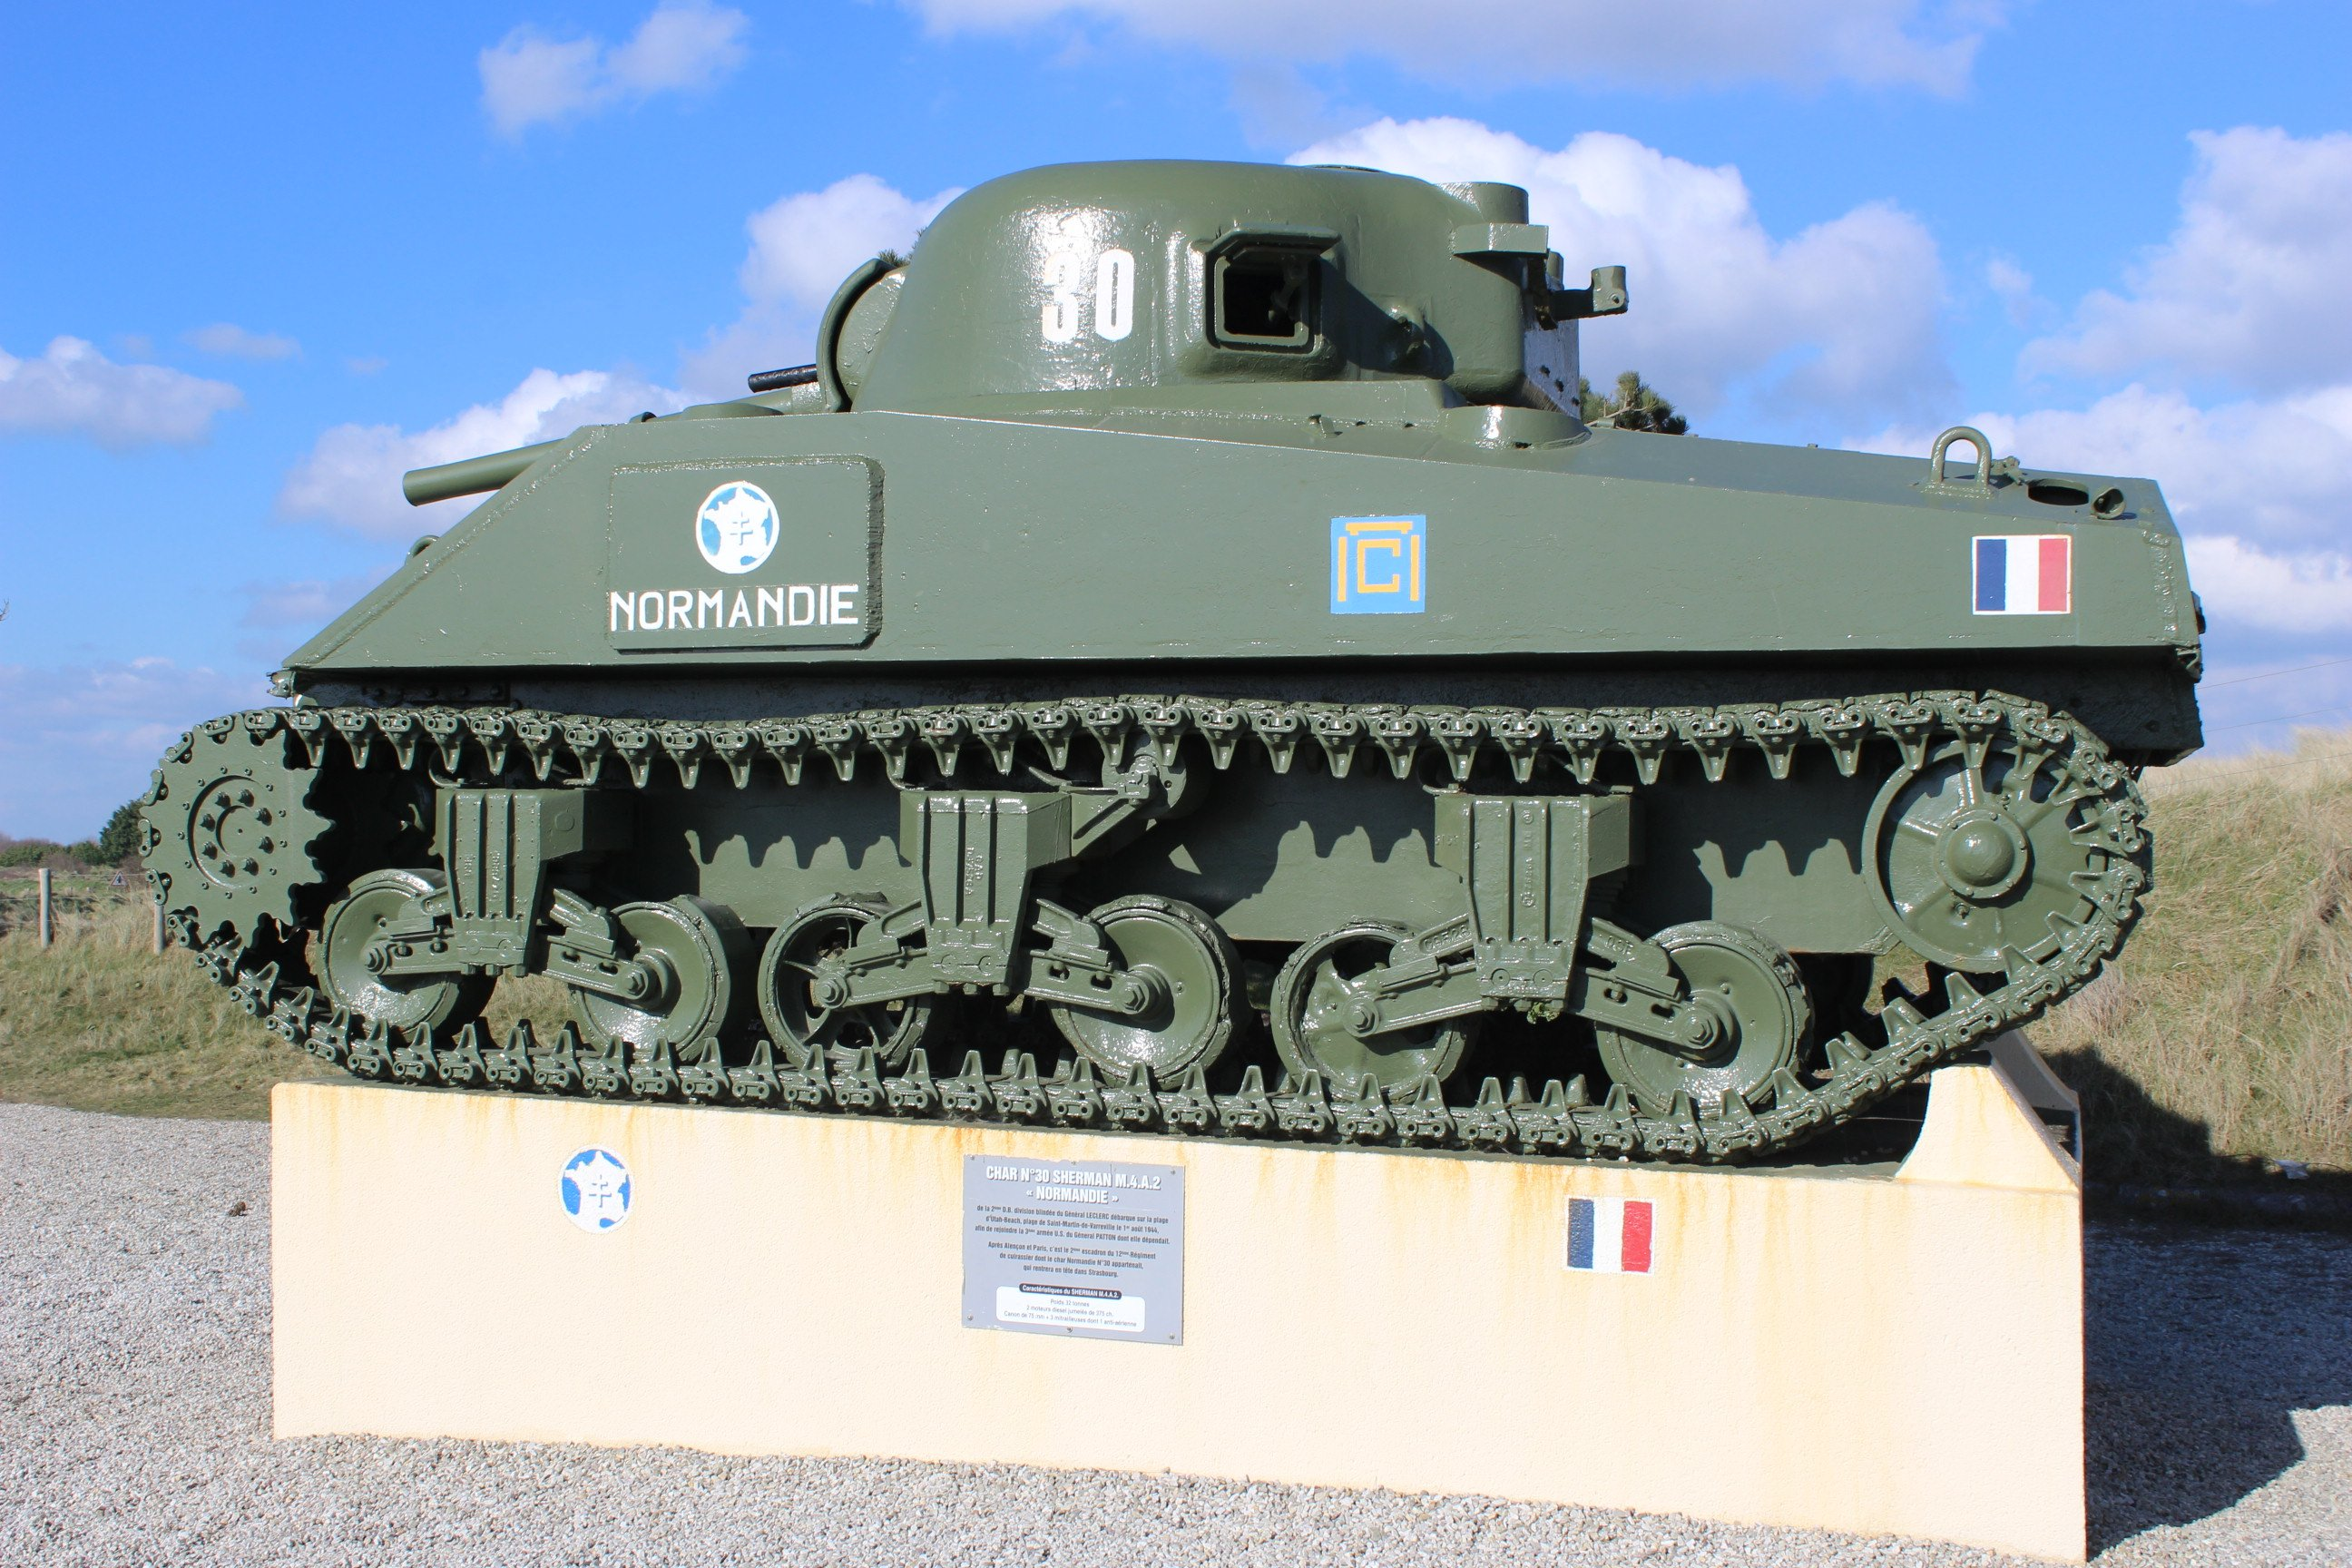 D-Day in La Manche